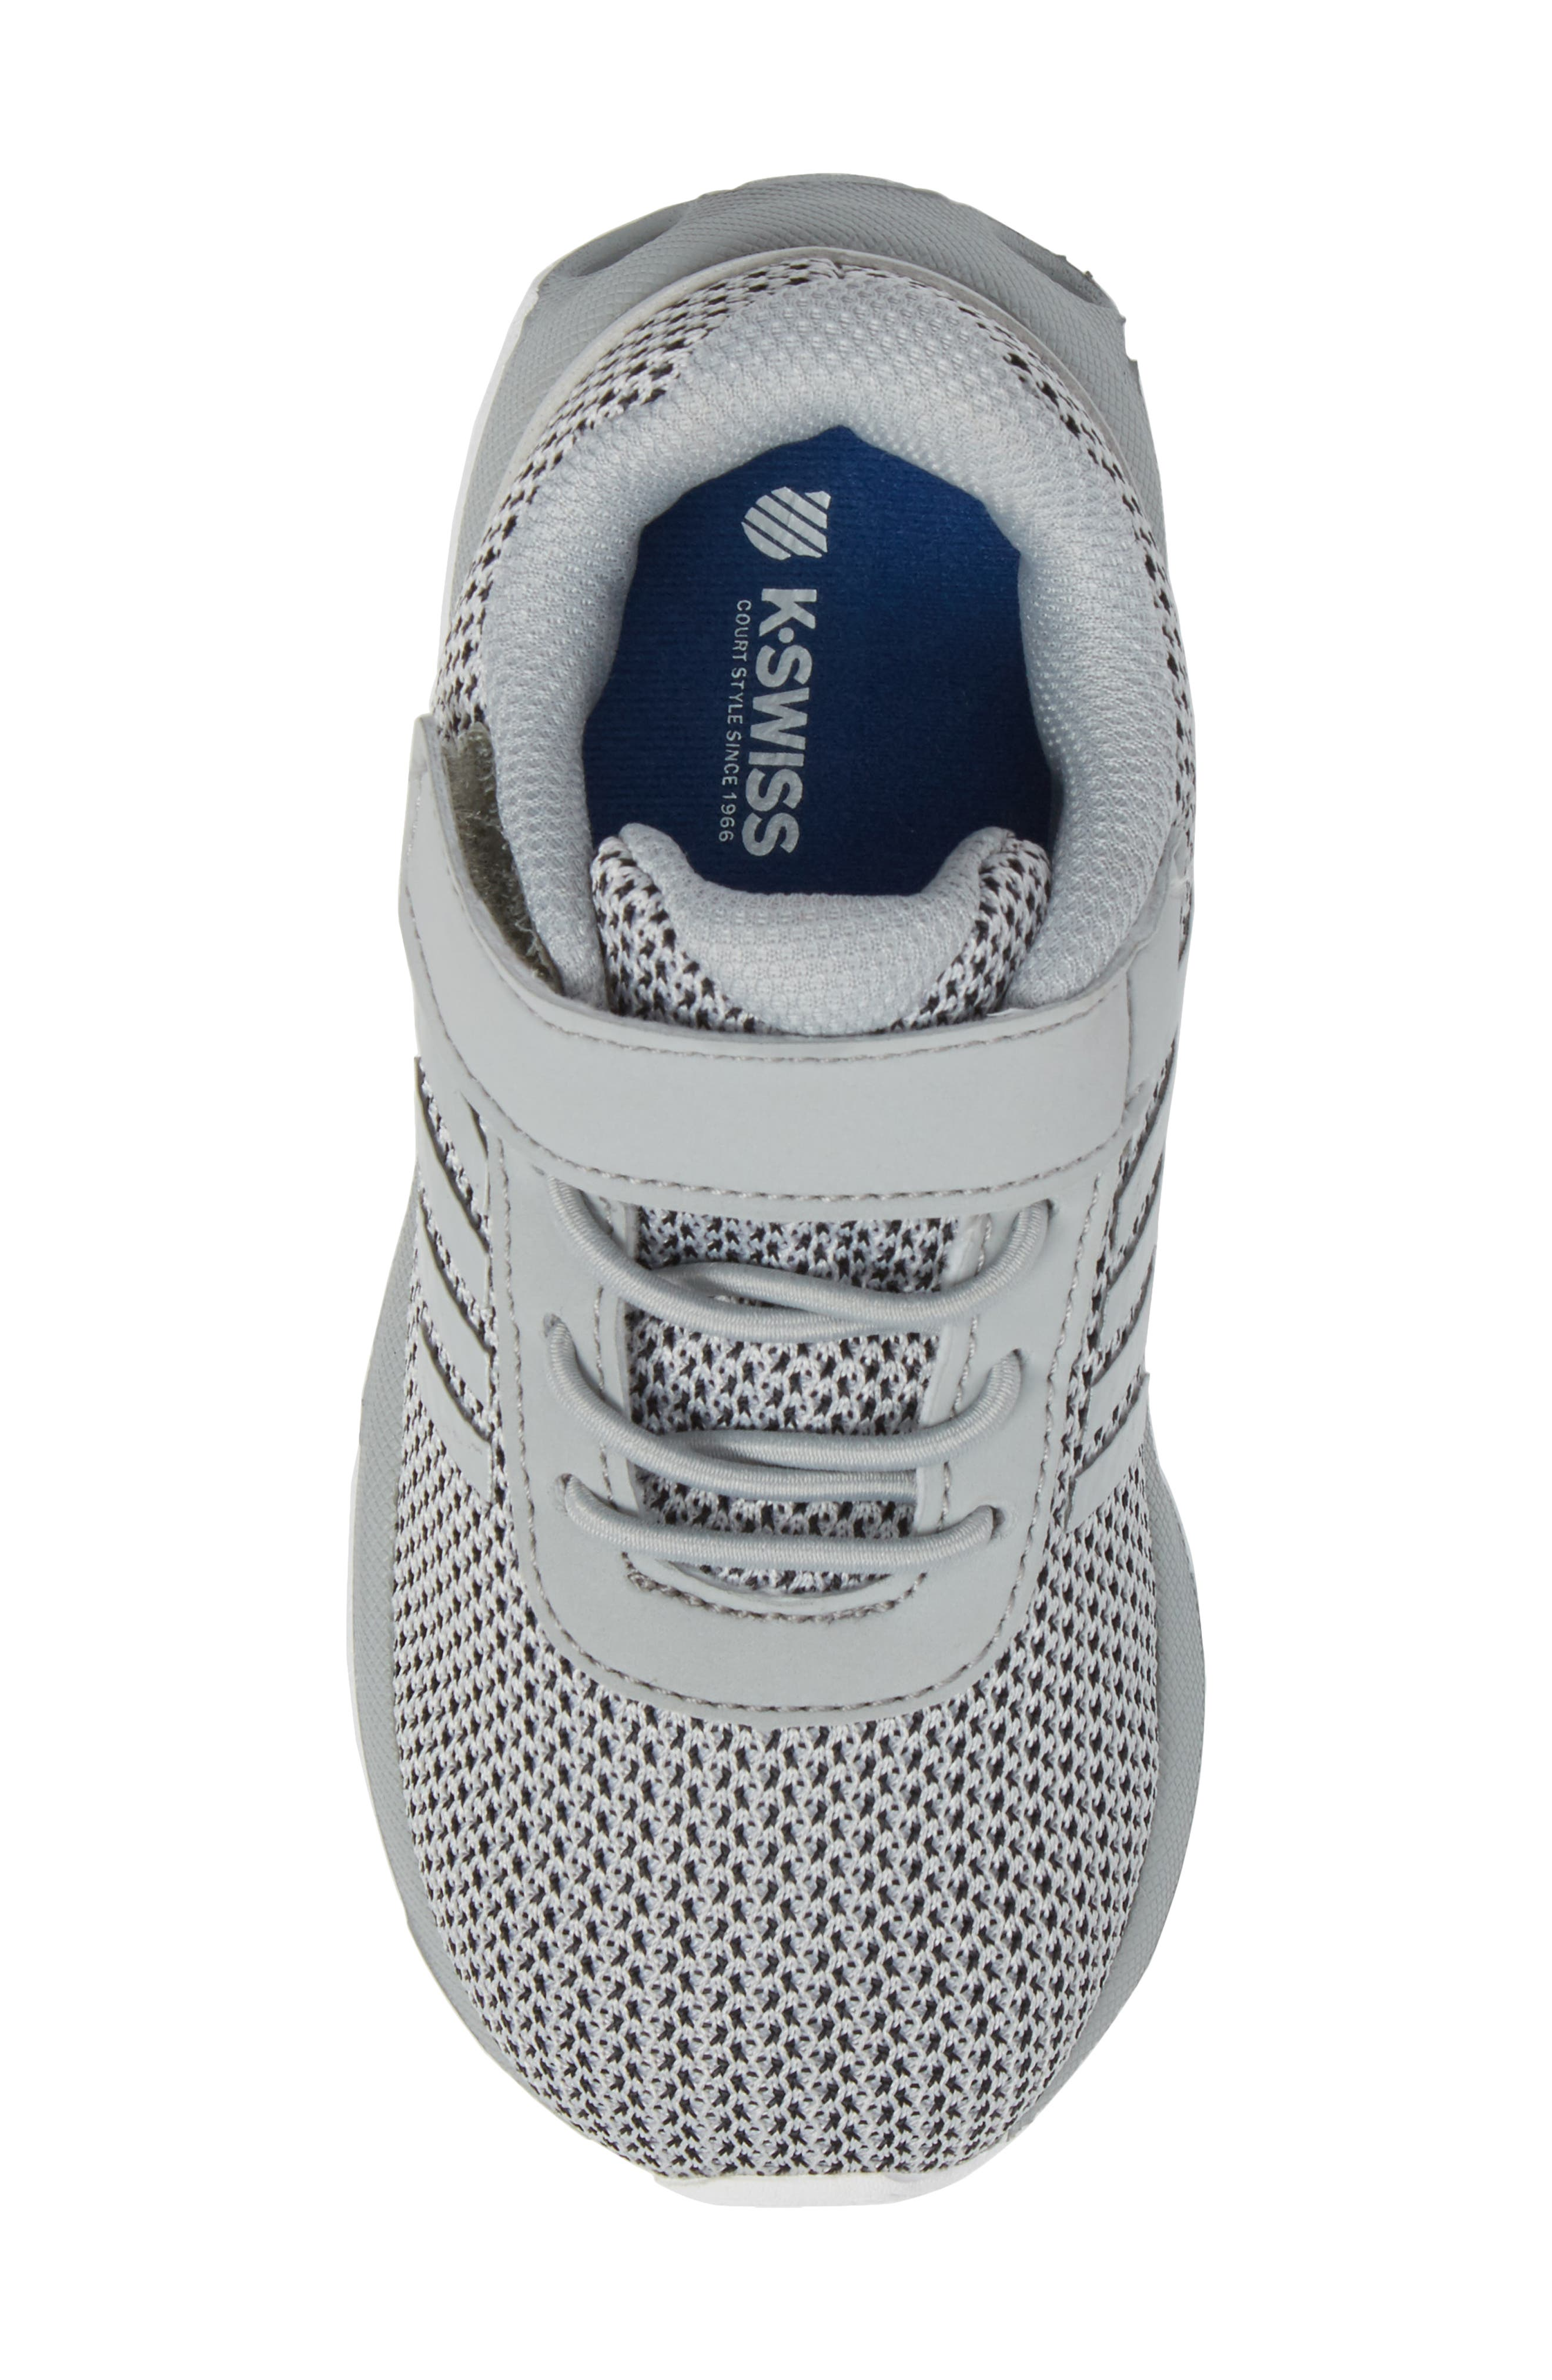 Tubes Infinity Sneaker,                             Alternate thumbnail 5, color,                             Highrise/ White